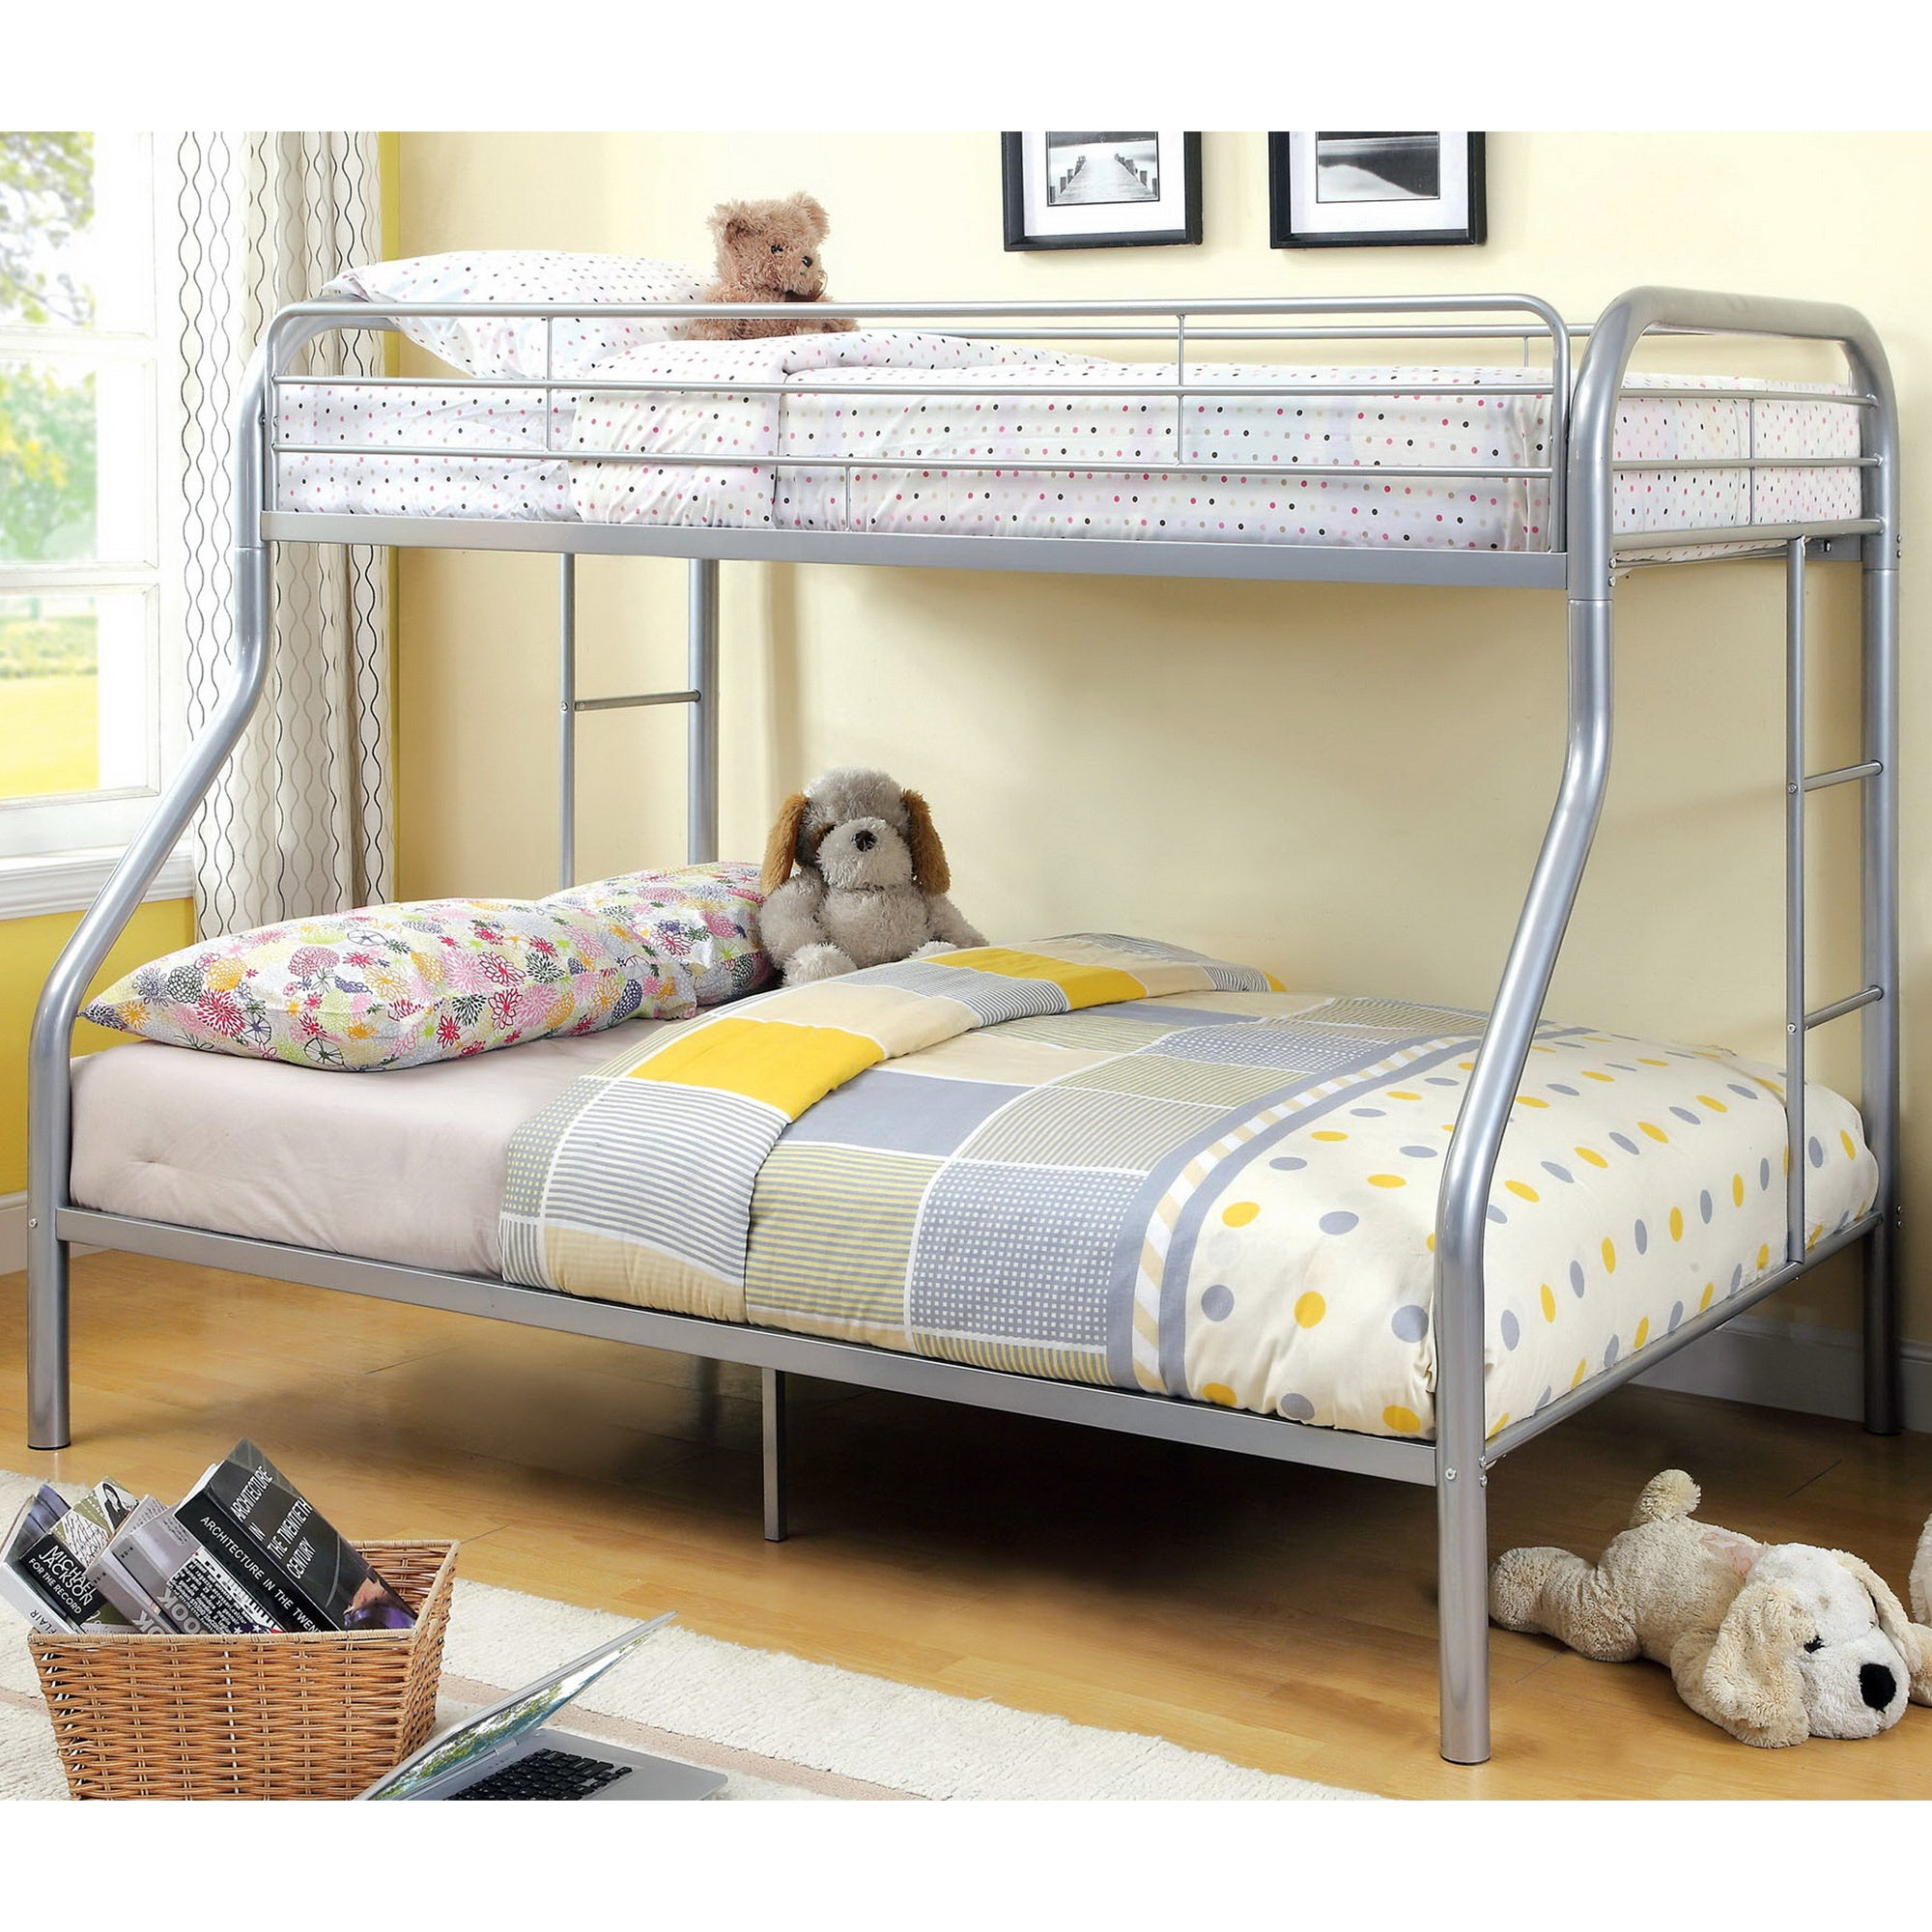 Furniture of America Linden Twin Over Full Metal Bunk Bed...